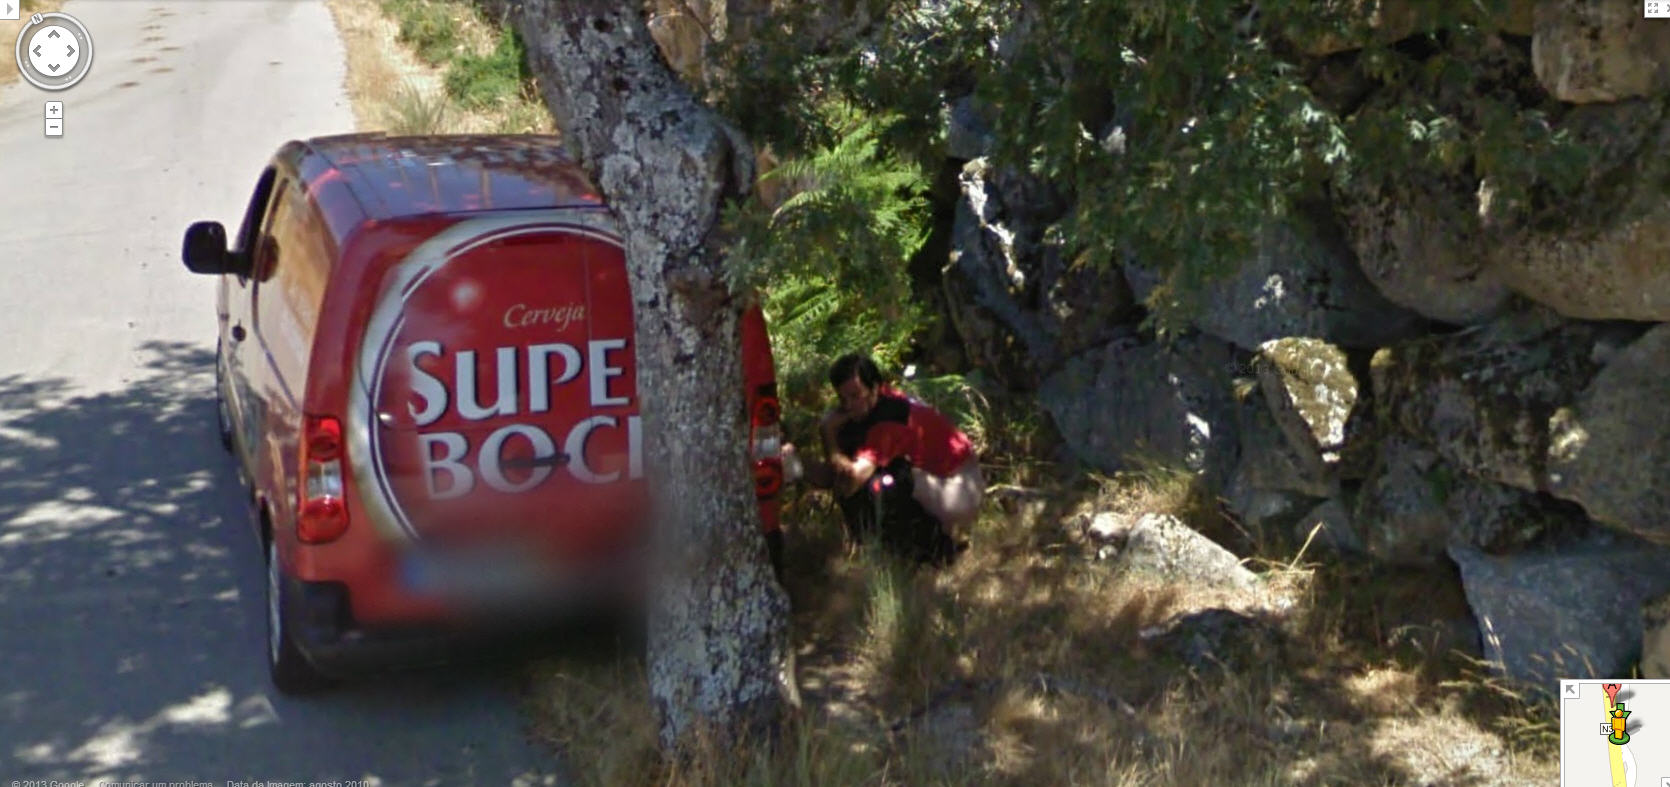 google-street-view-portugal-shit.jpg